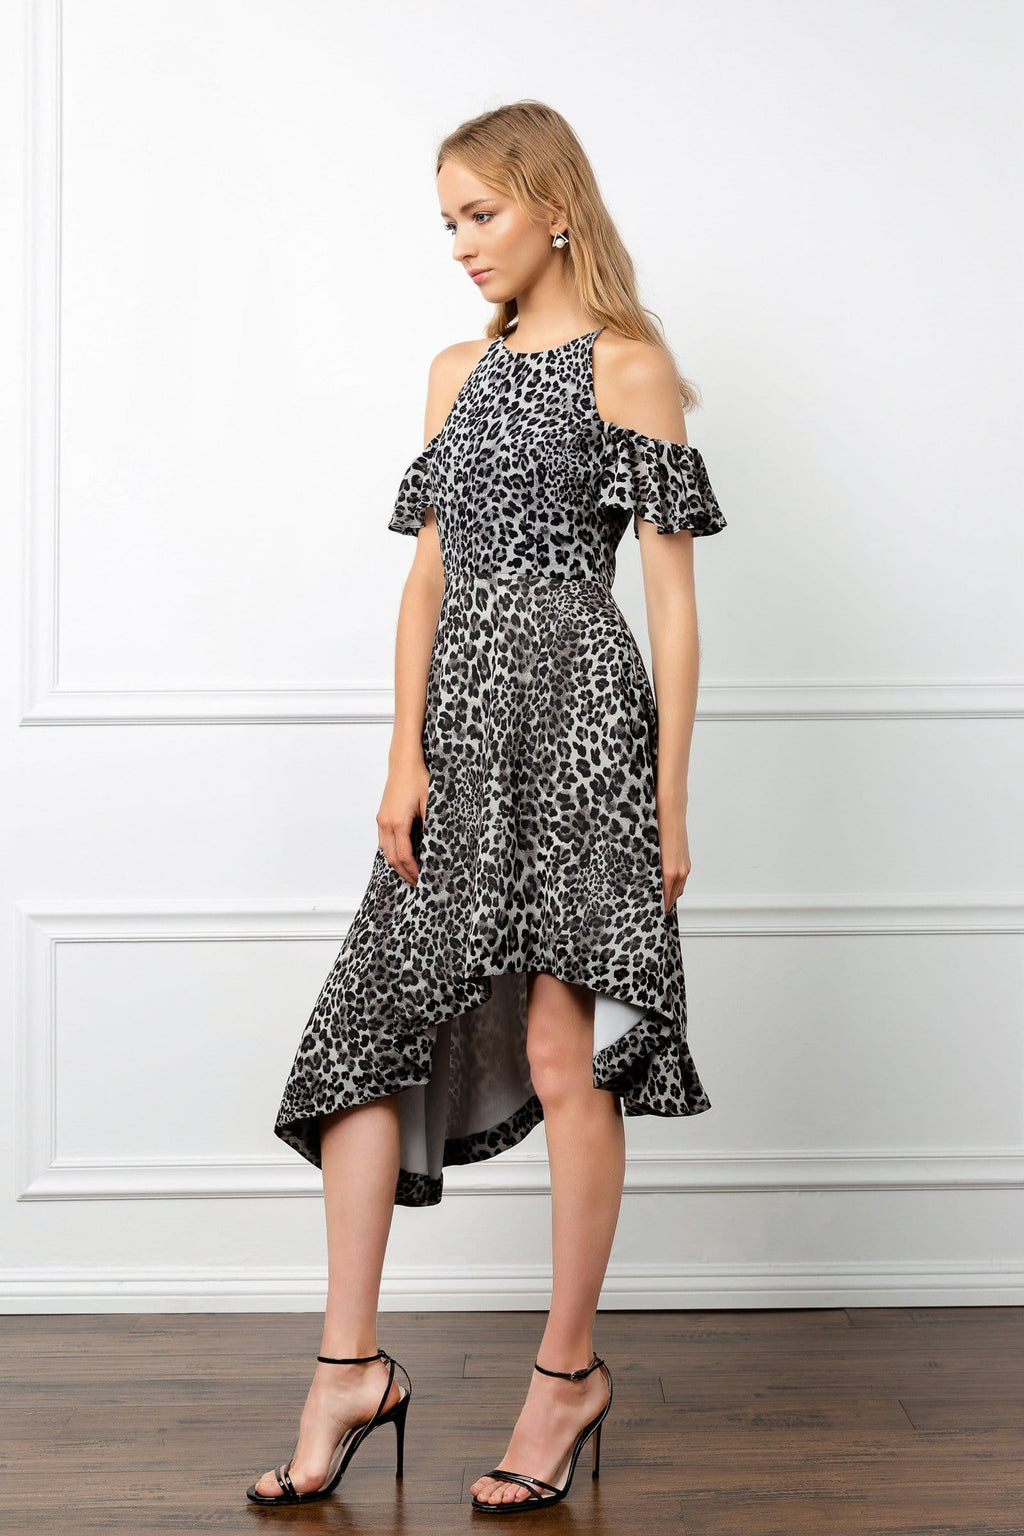 Profile view of Snow Leopard dress with dropped shoulders j.ing, womens fashion